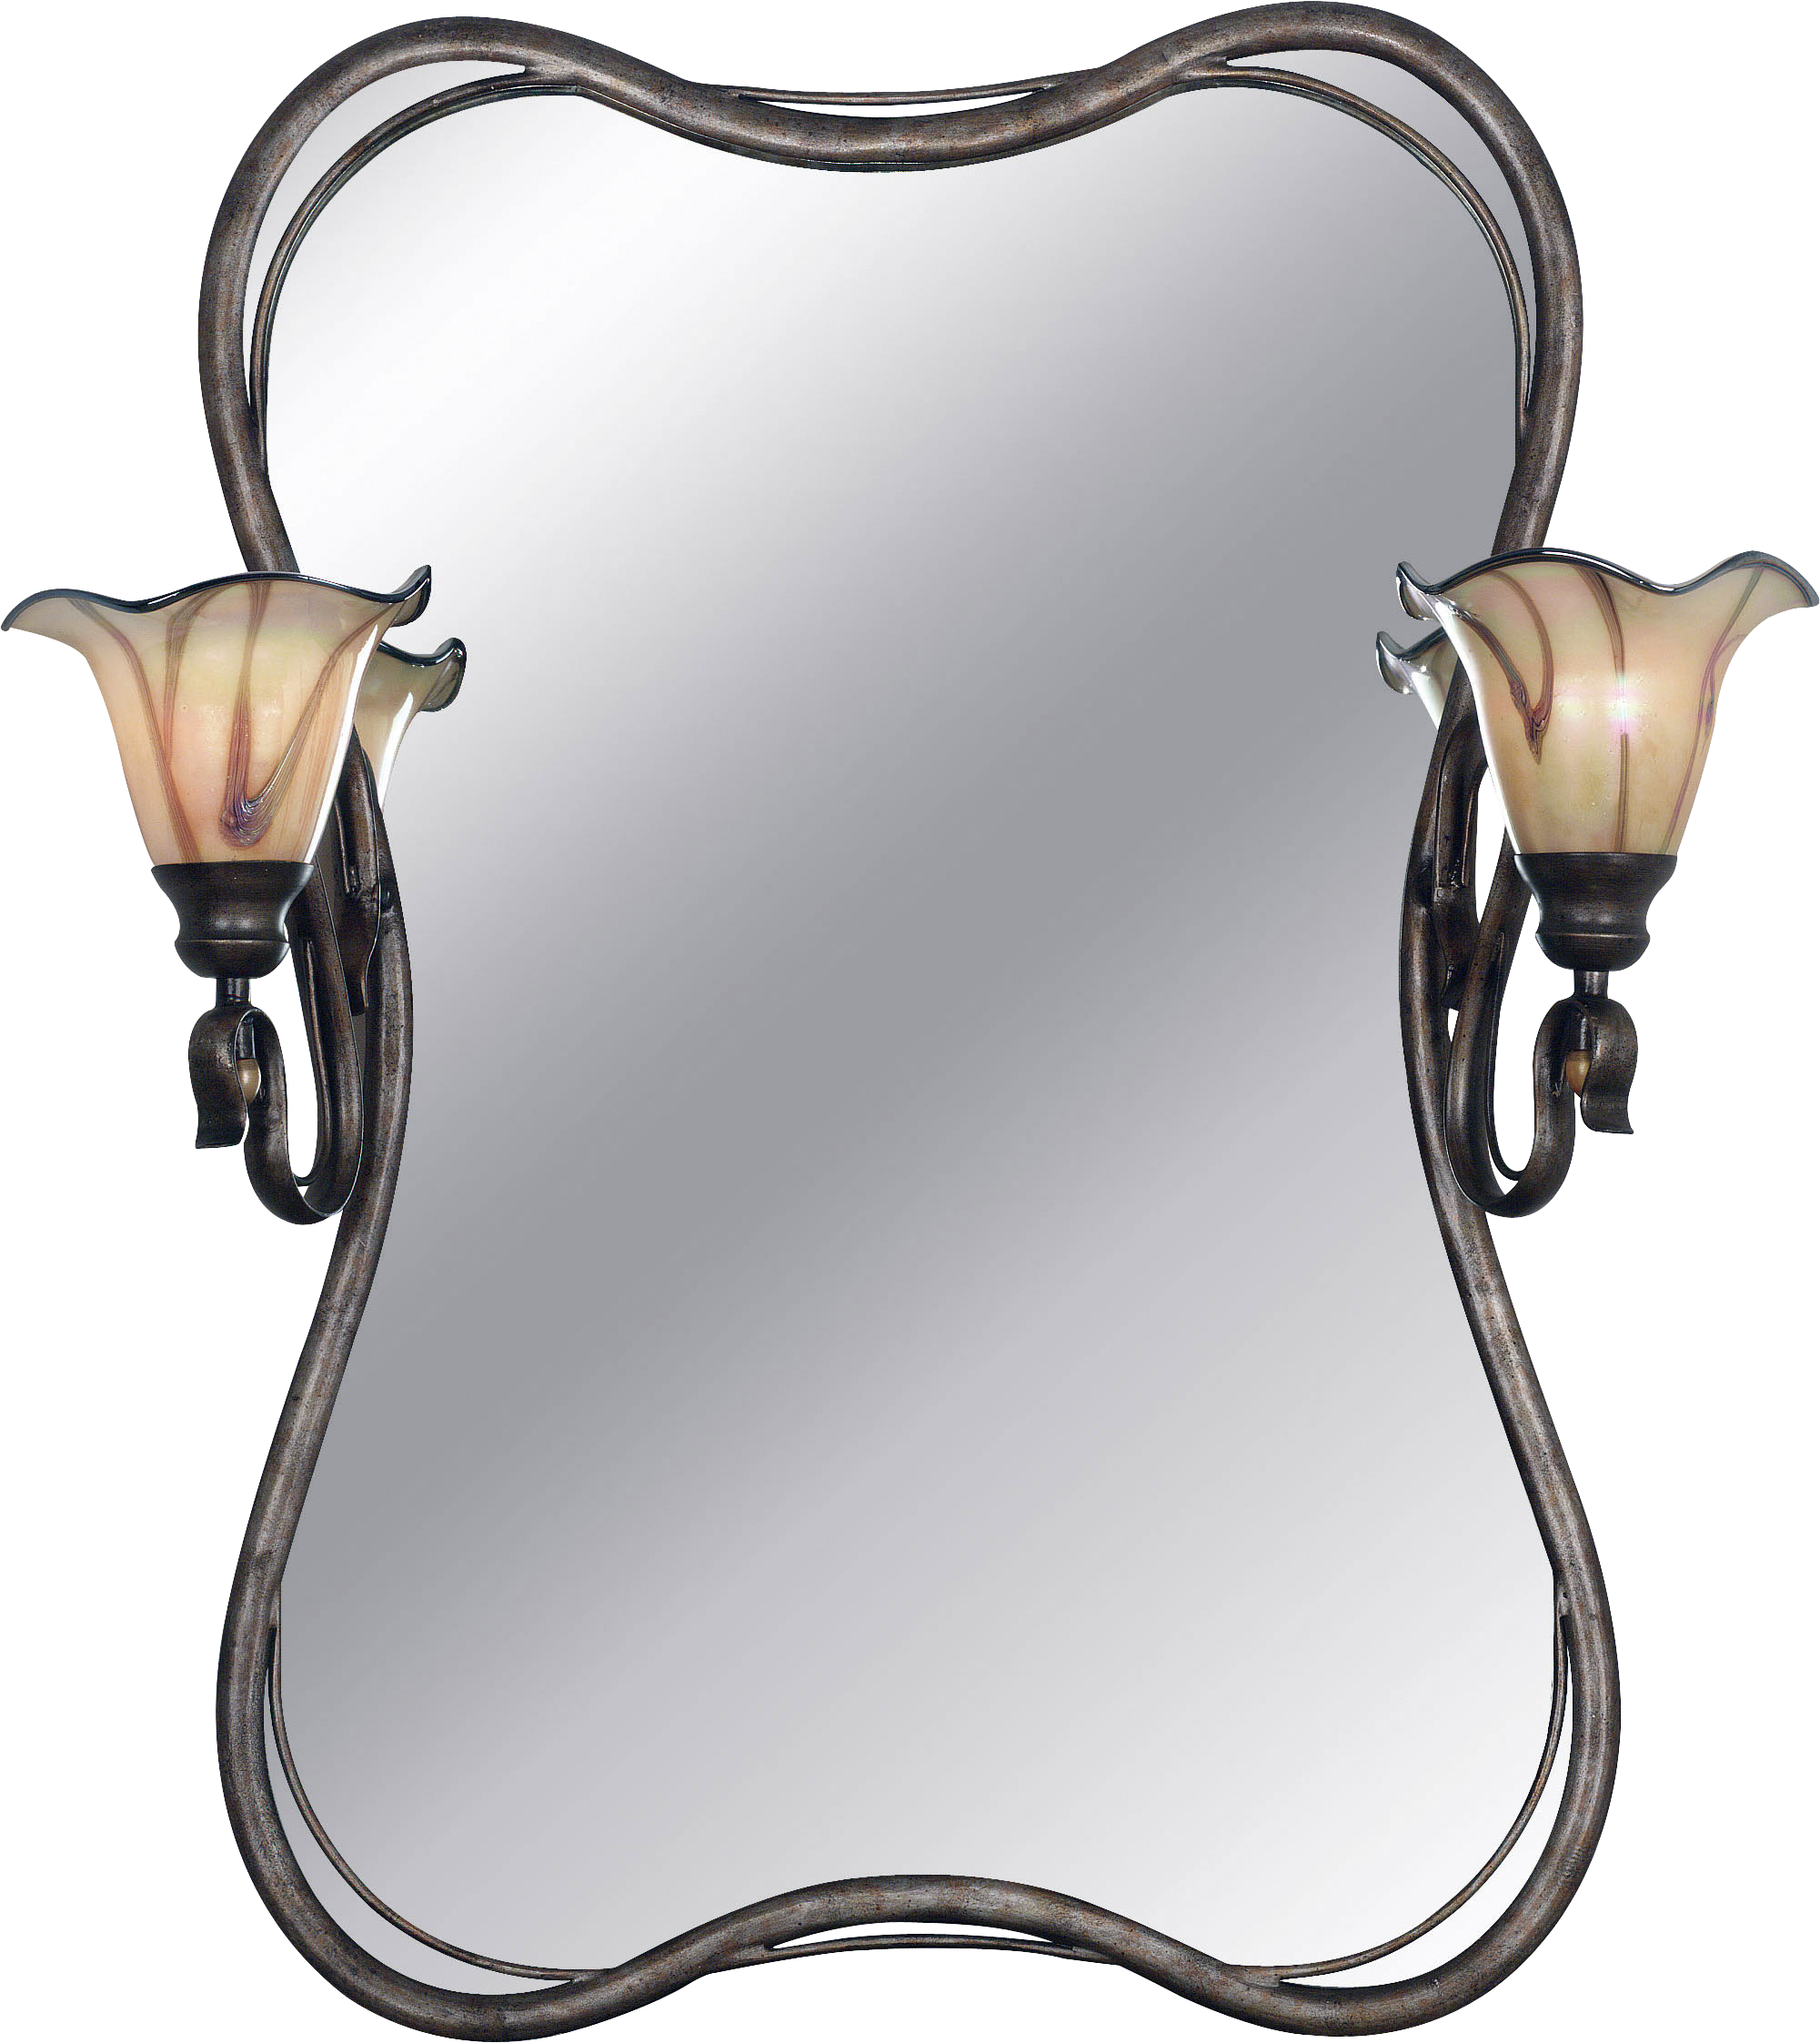 Mirror clipart png. Image purepng free transparent